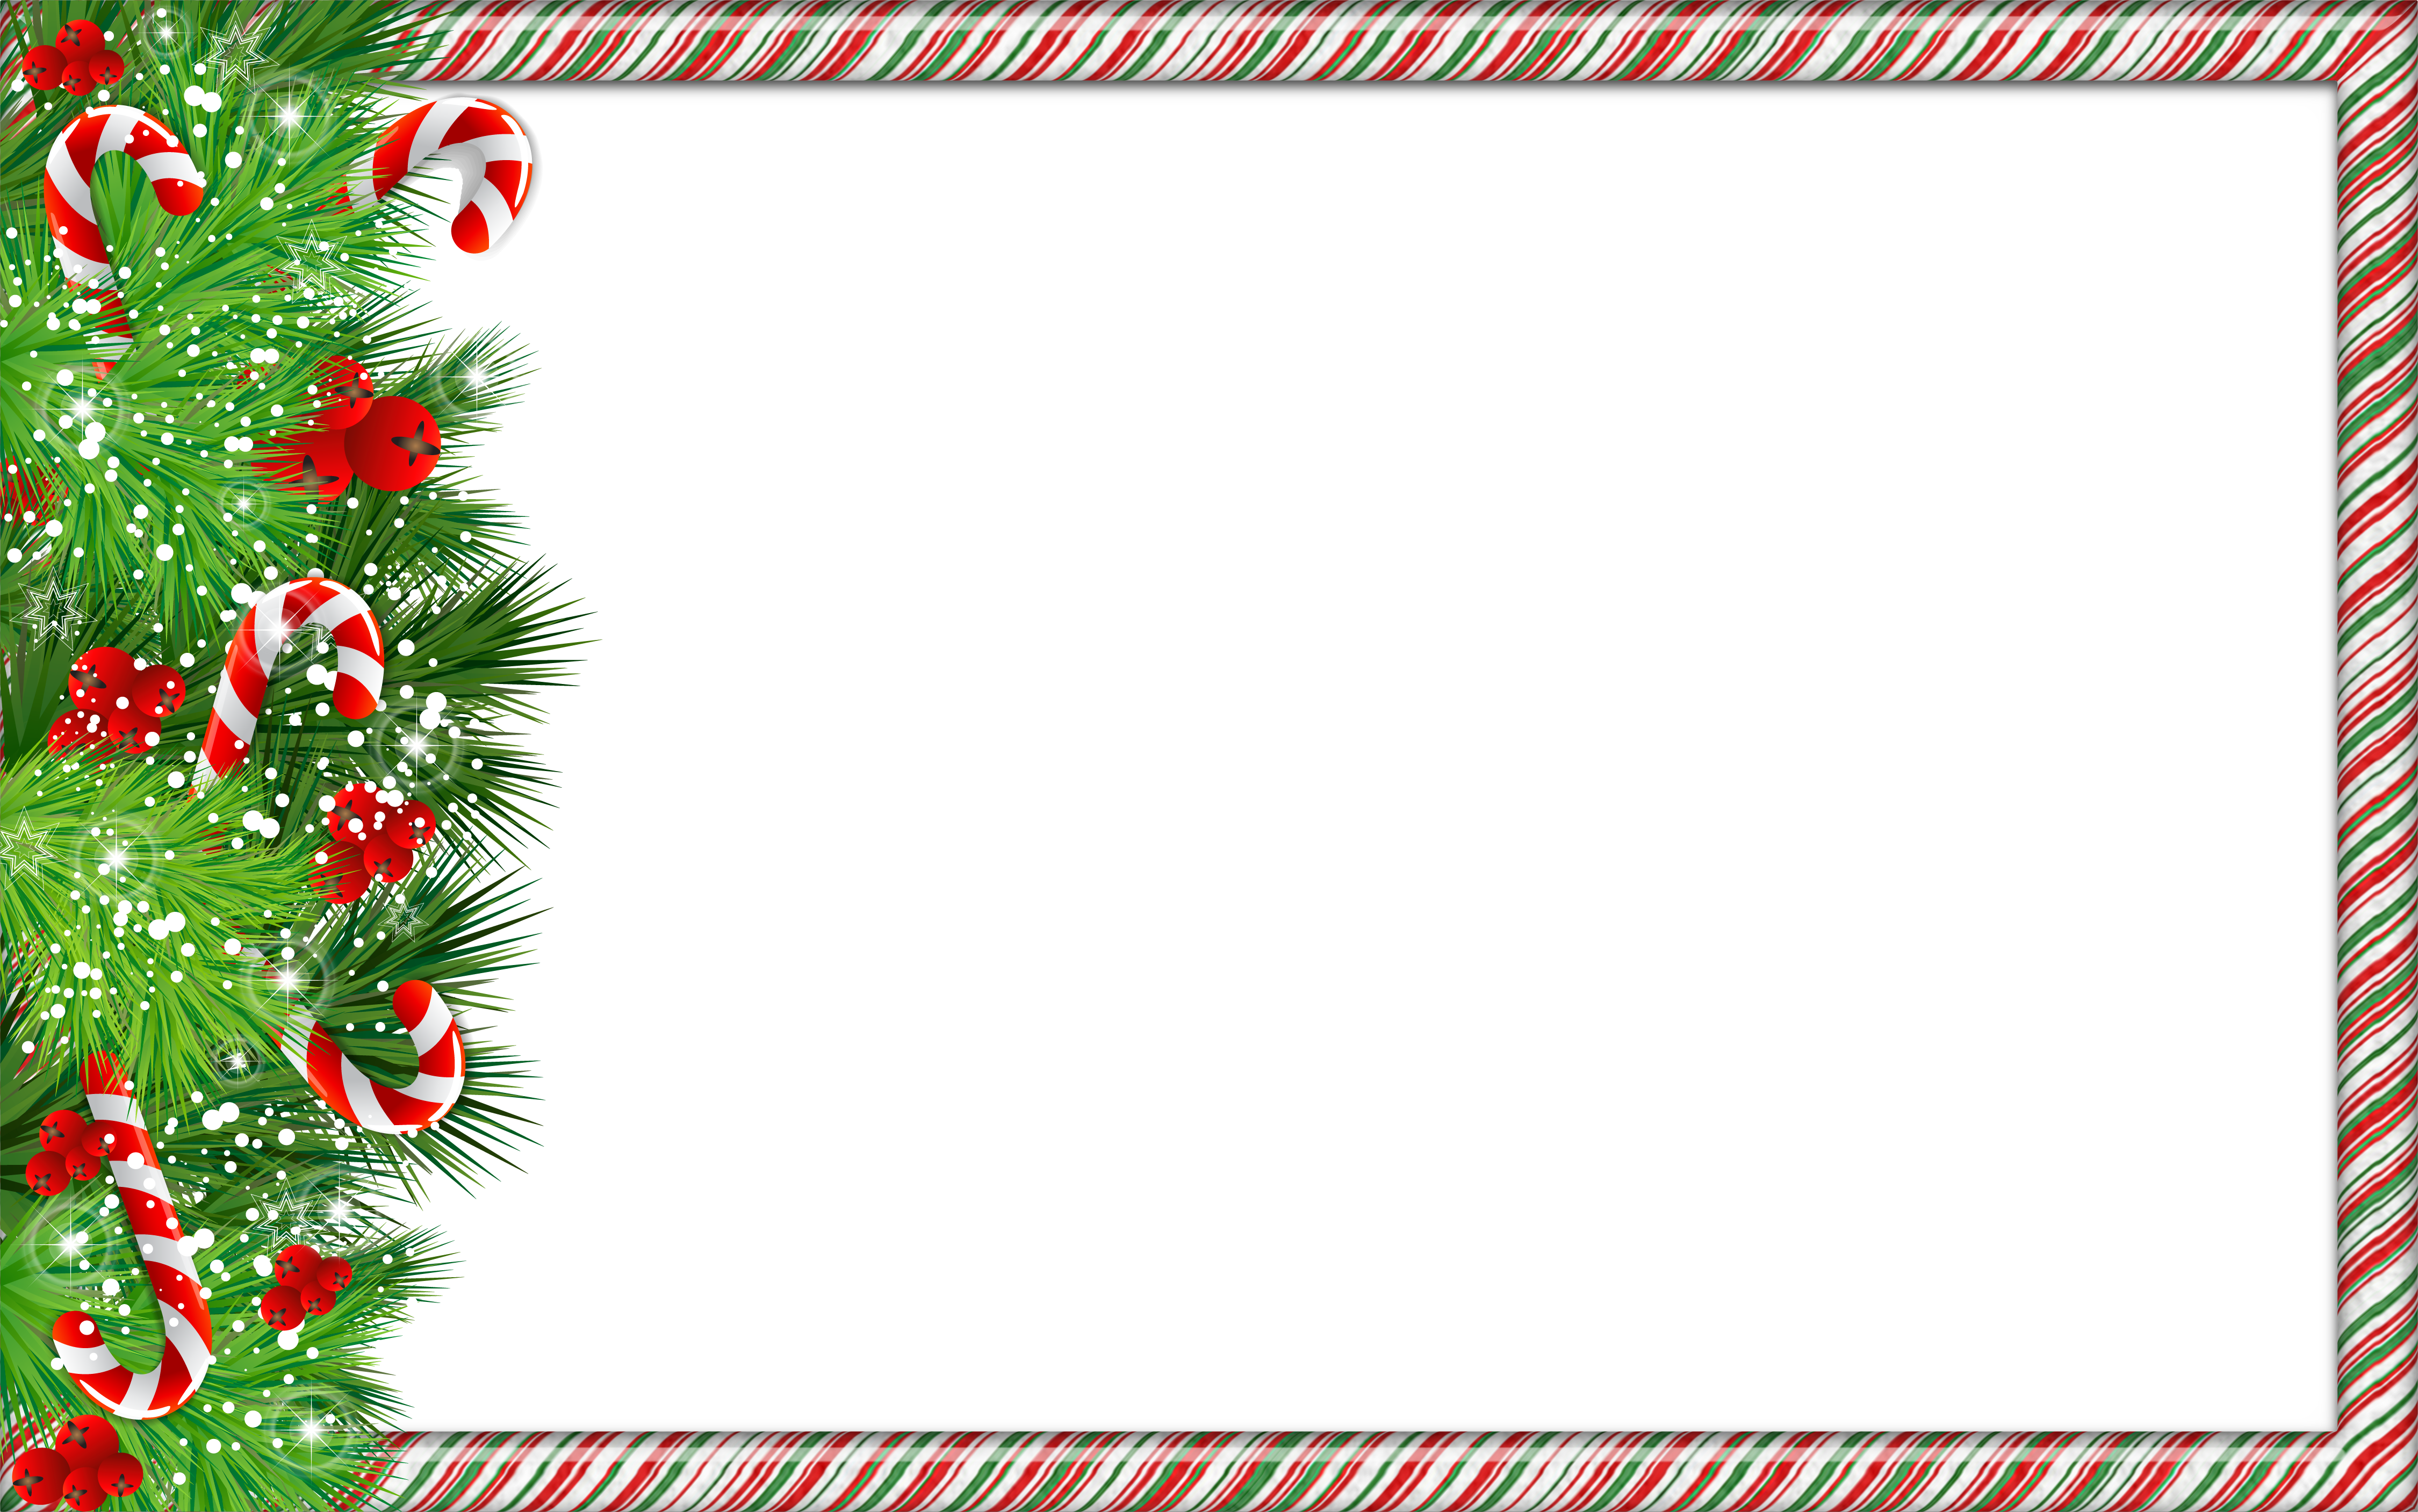 Christmasframe clipart graphic black and white Christmas PNG Photo Frame with Candy Canes | Gallery Yopriceville ... graphic black and white